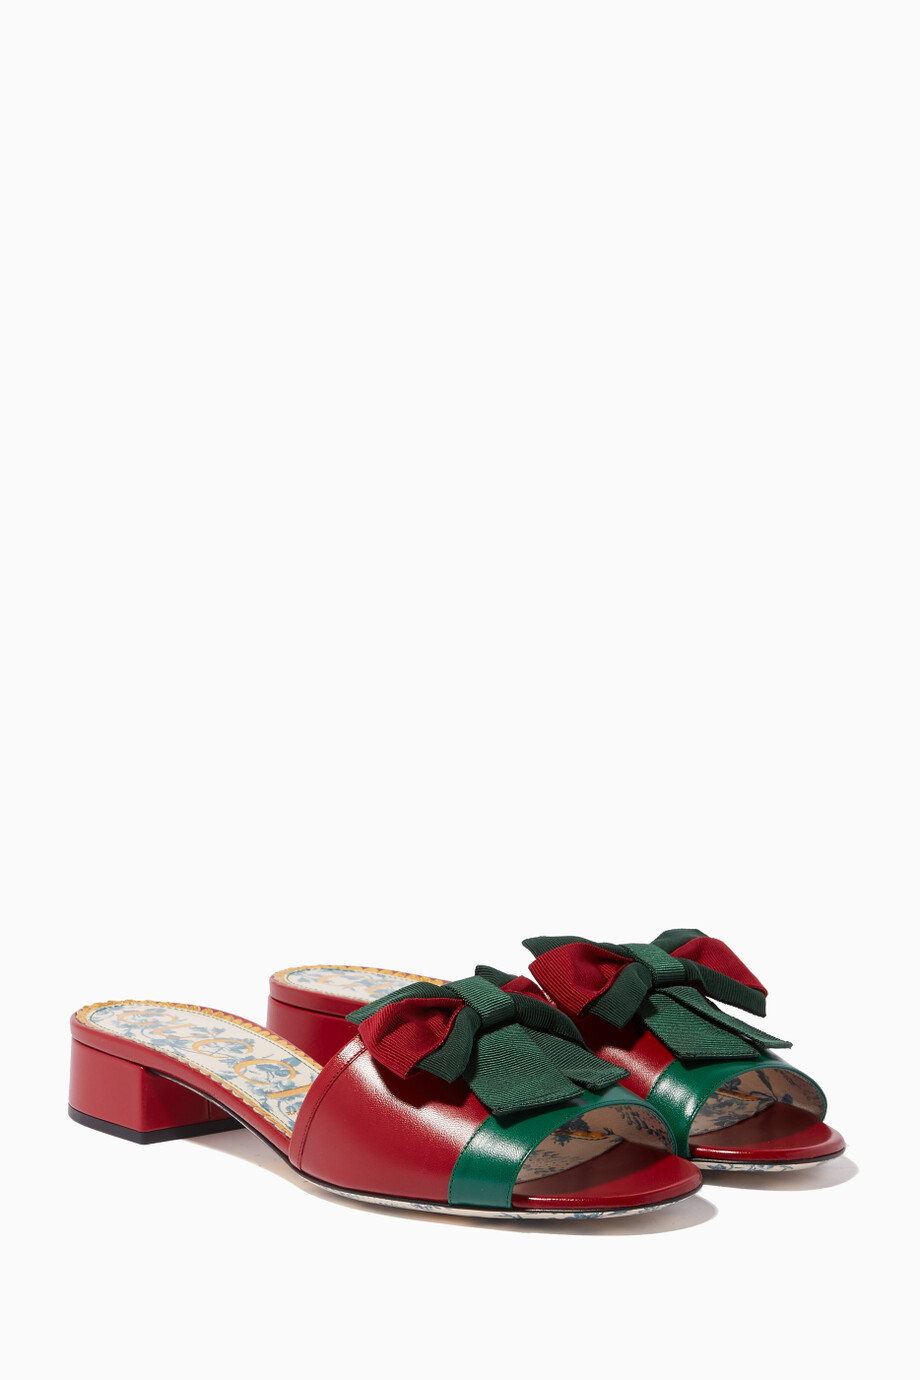 29a963077 Shop Gucci Red Red Web Bow-Embellished Leather Slides for Women ...